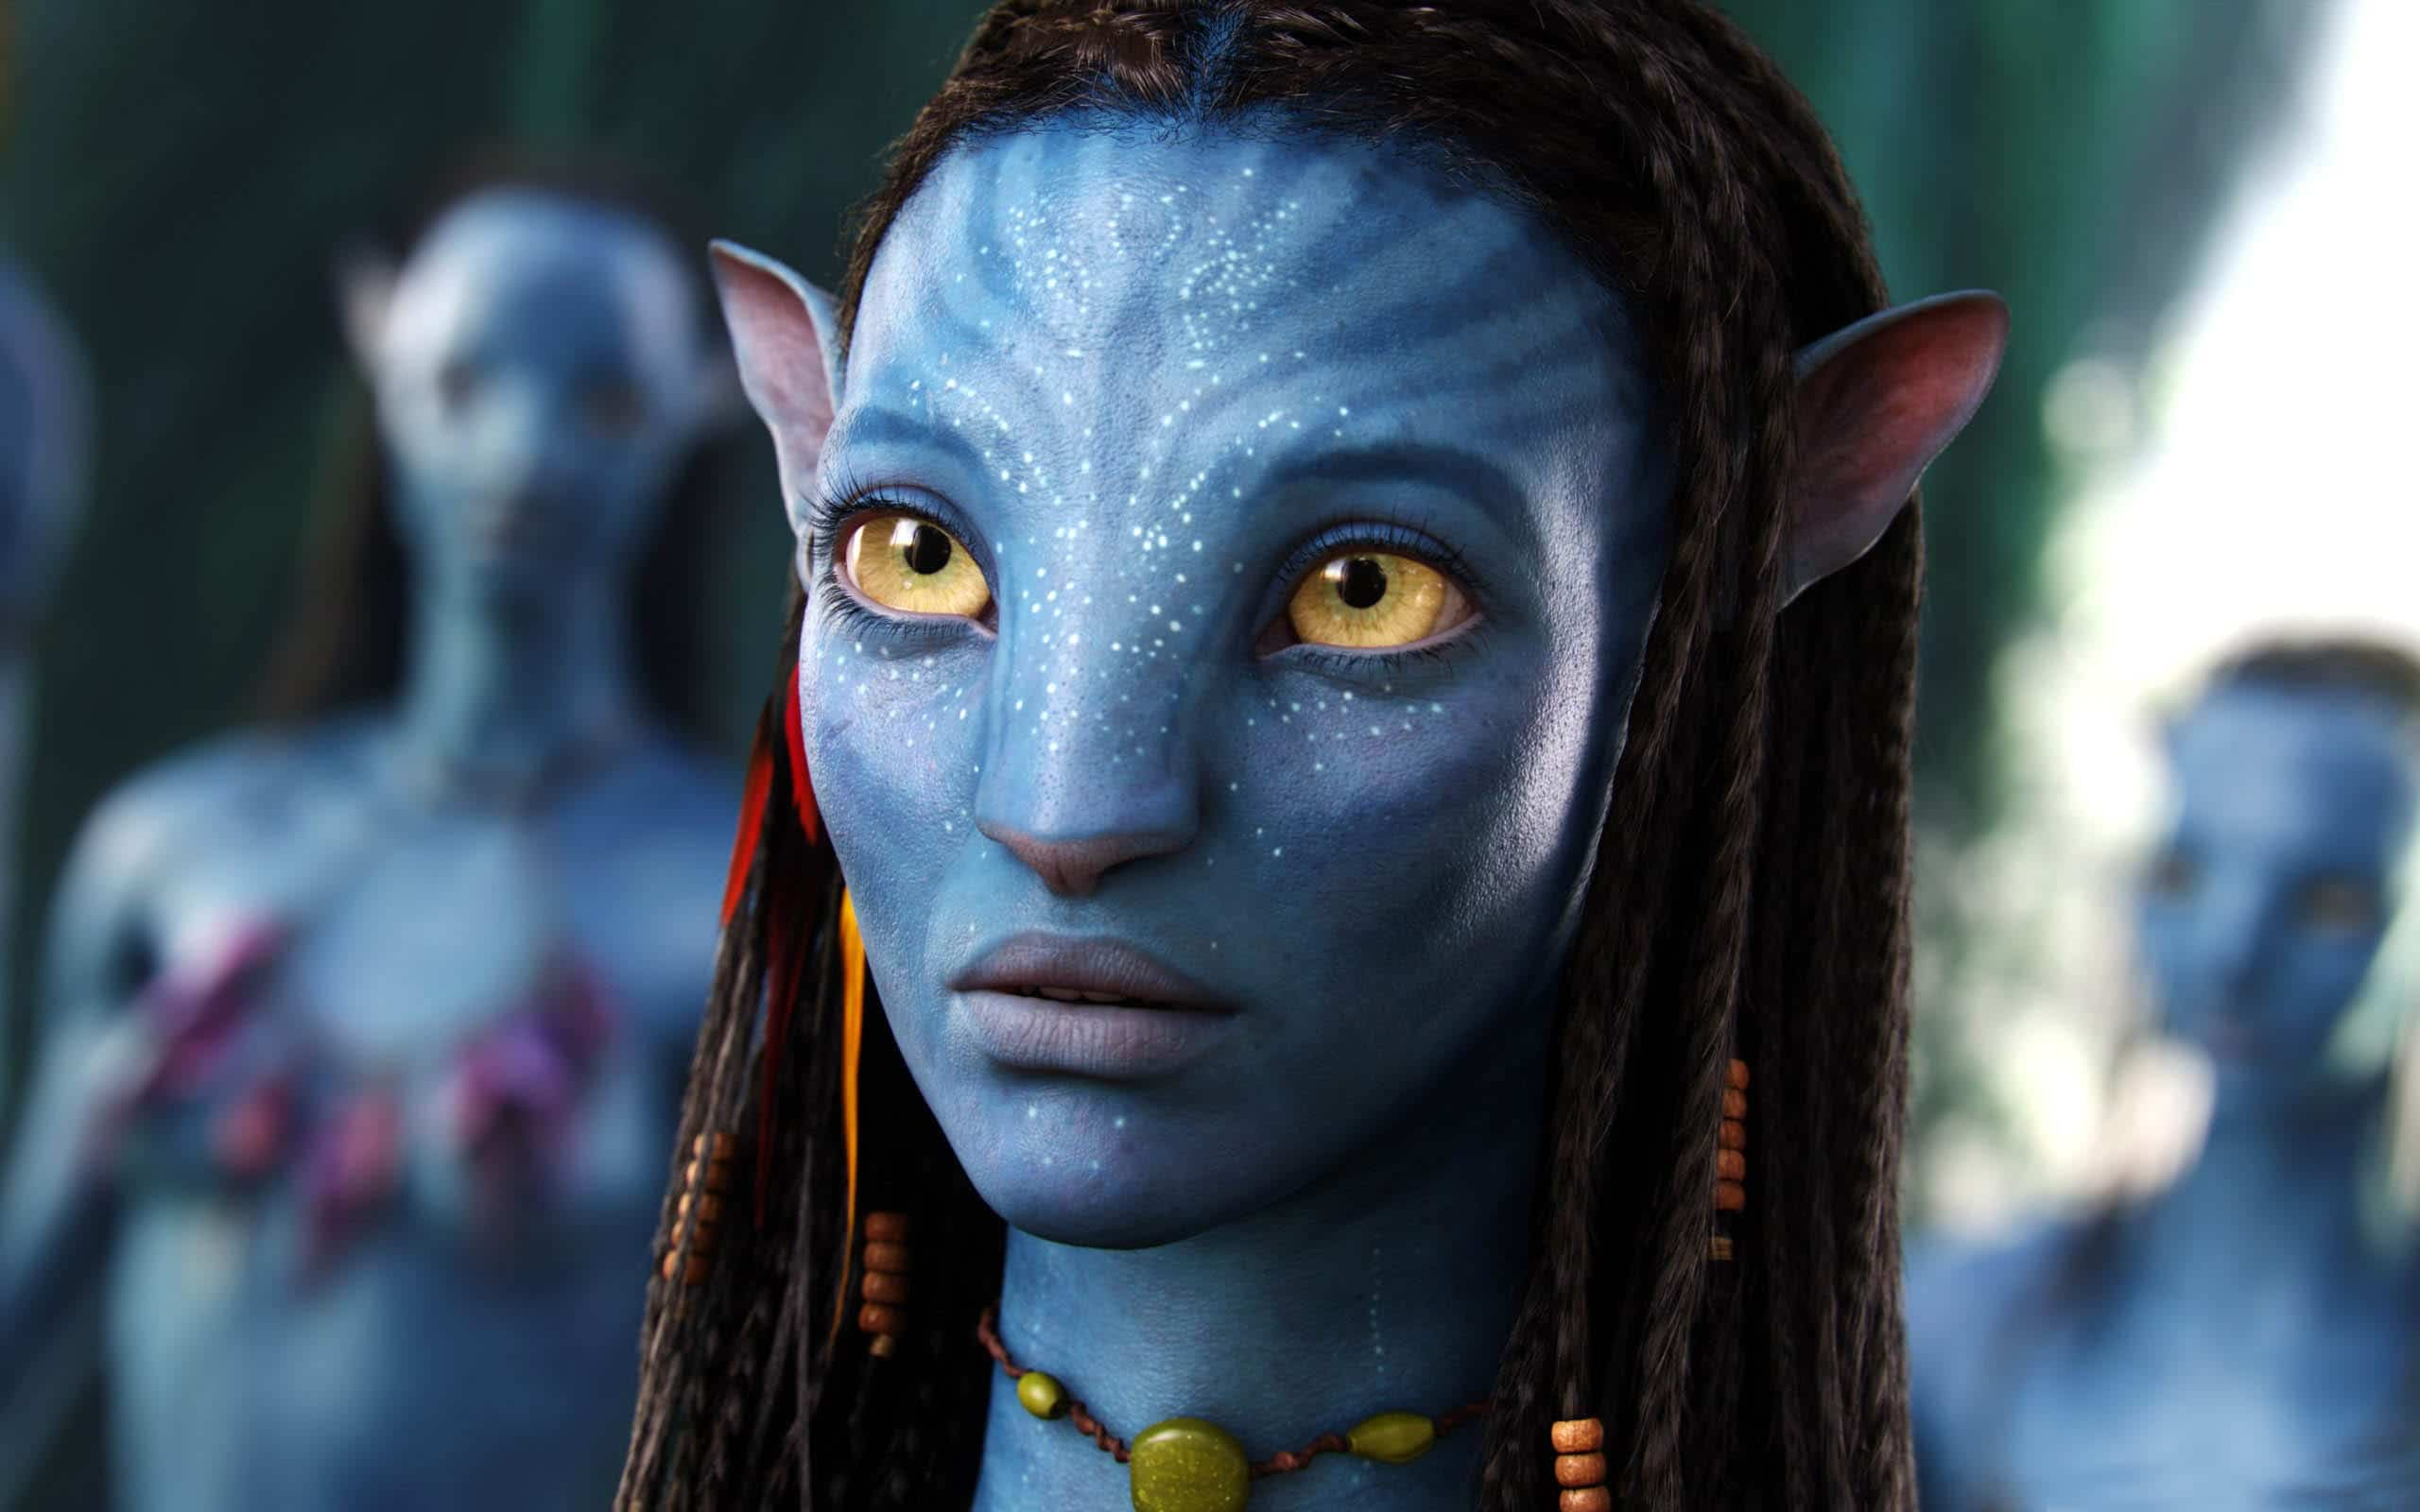 neytiri_avatar_movie_wallpapers_hd_for_desktop